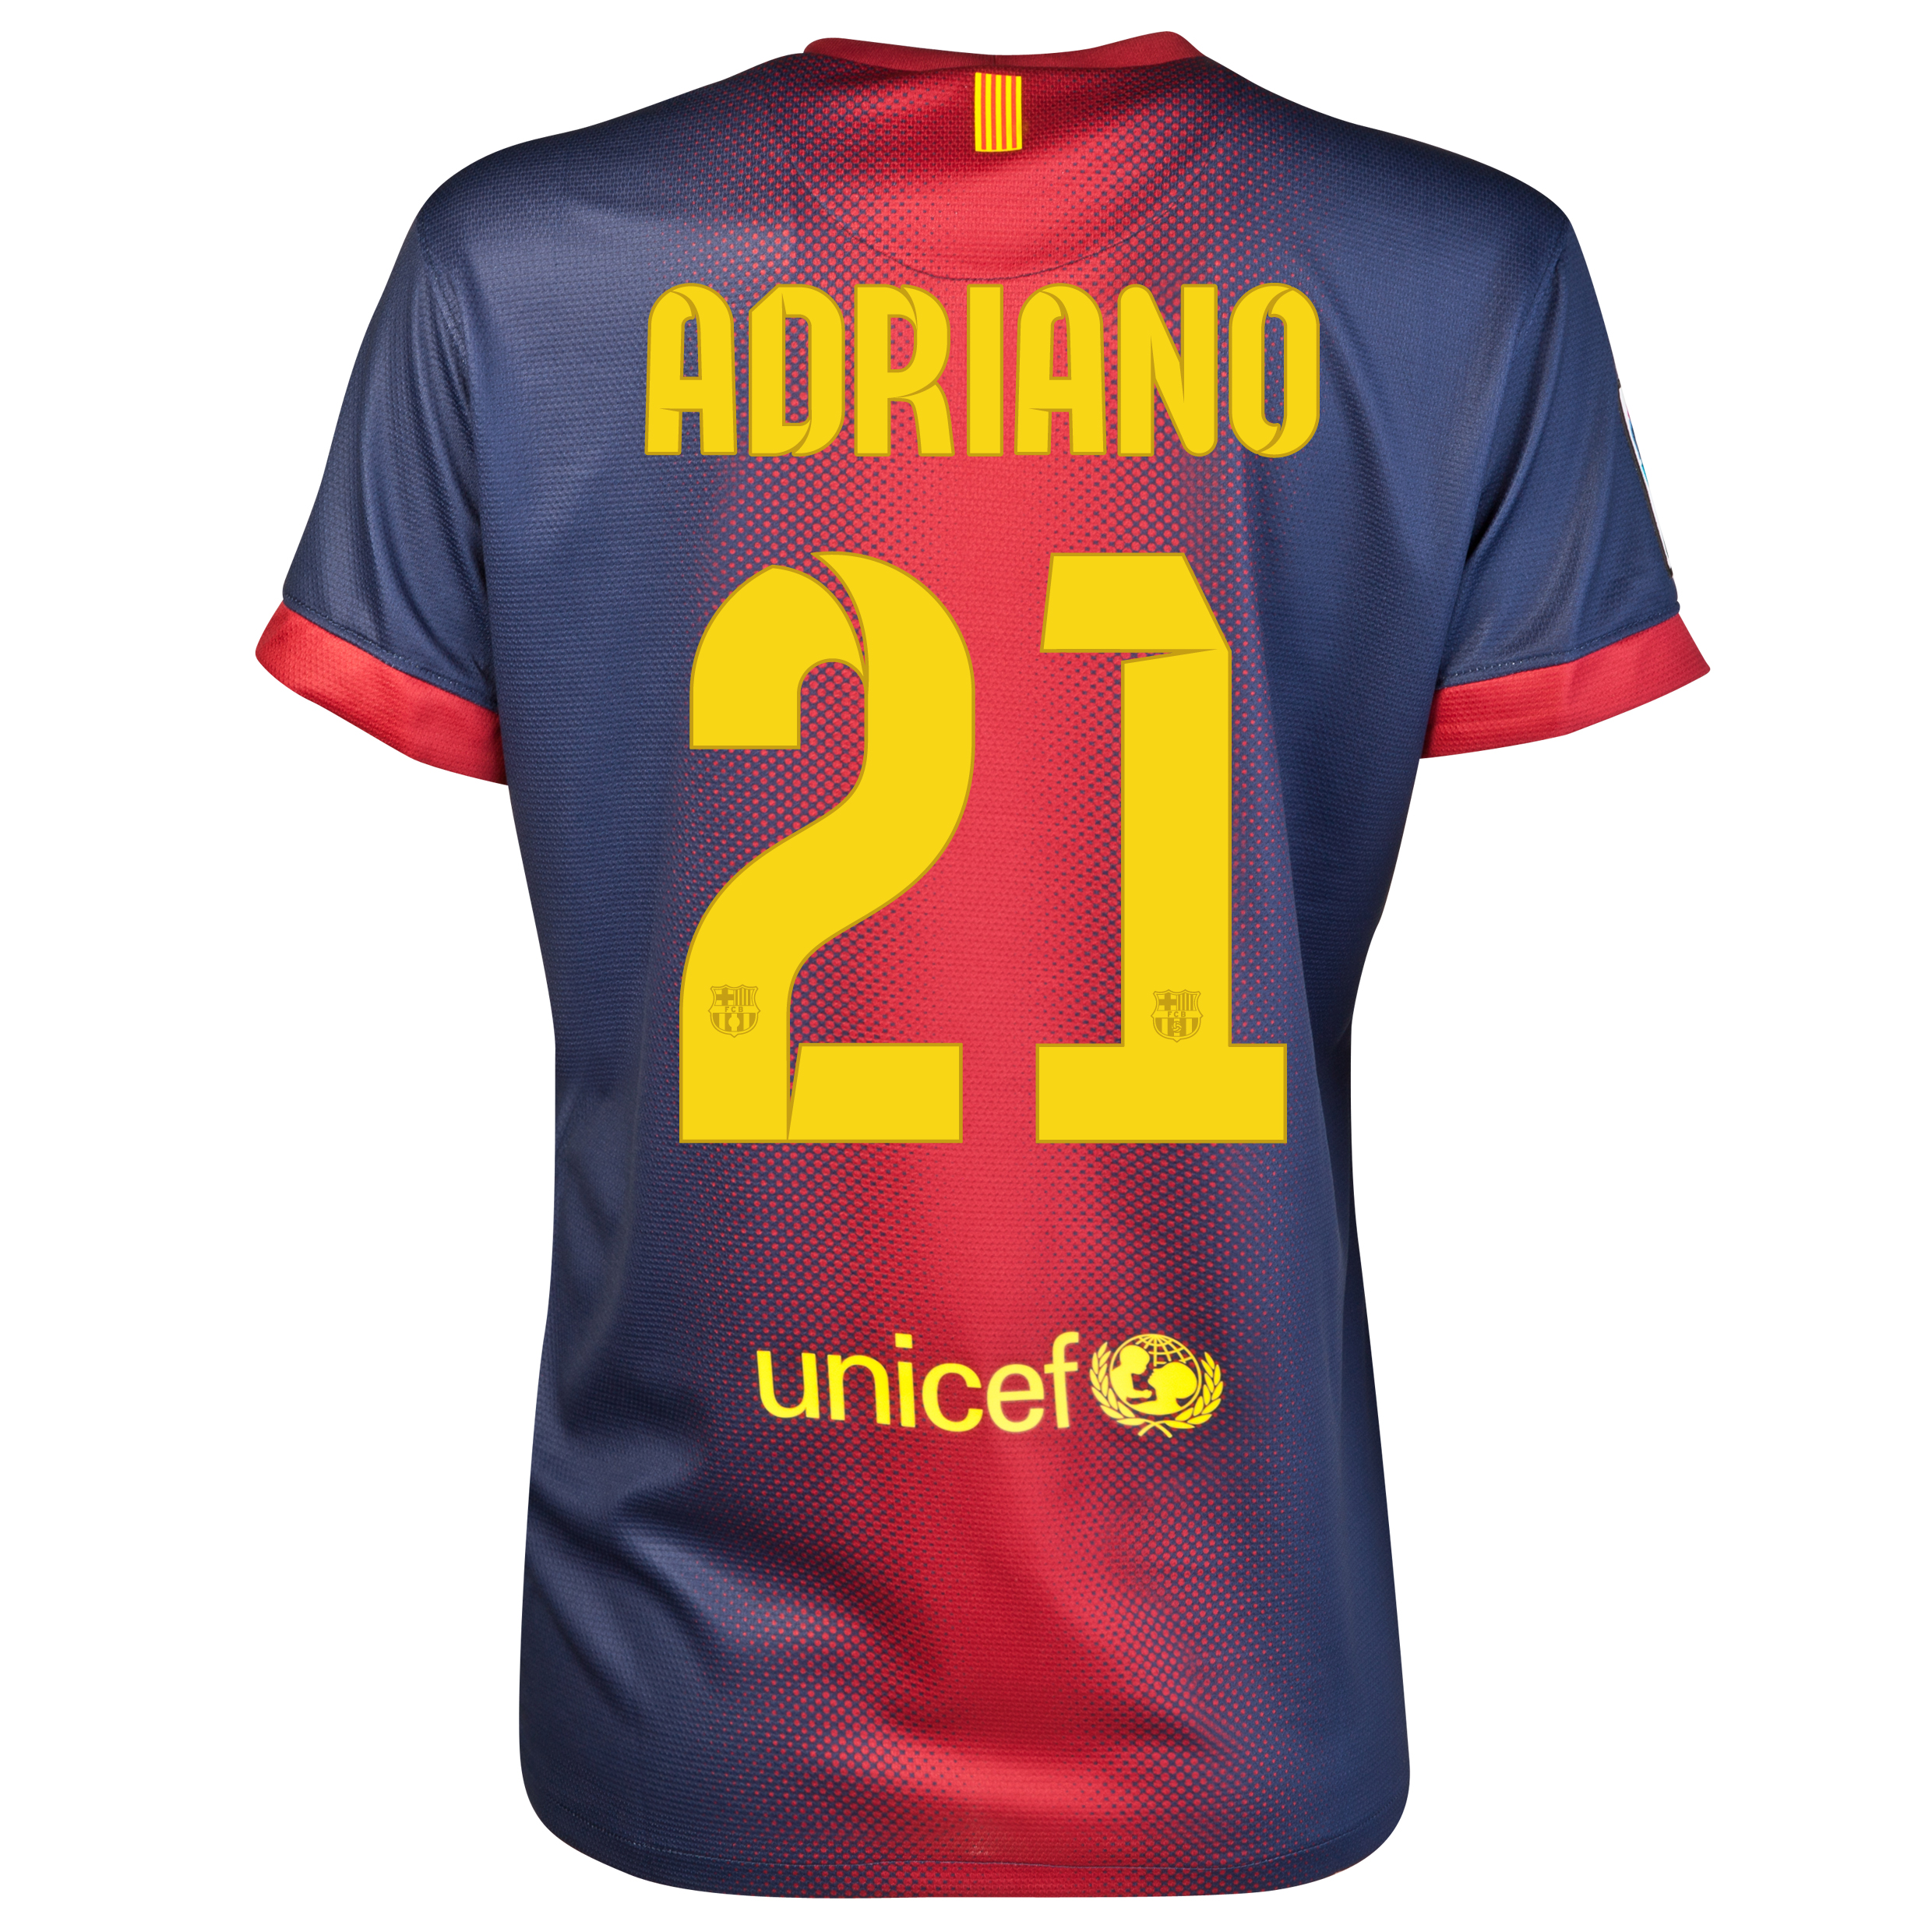 Barcelona Home Shirt 2012/13 - Womens with Adriano 21 printing